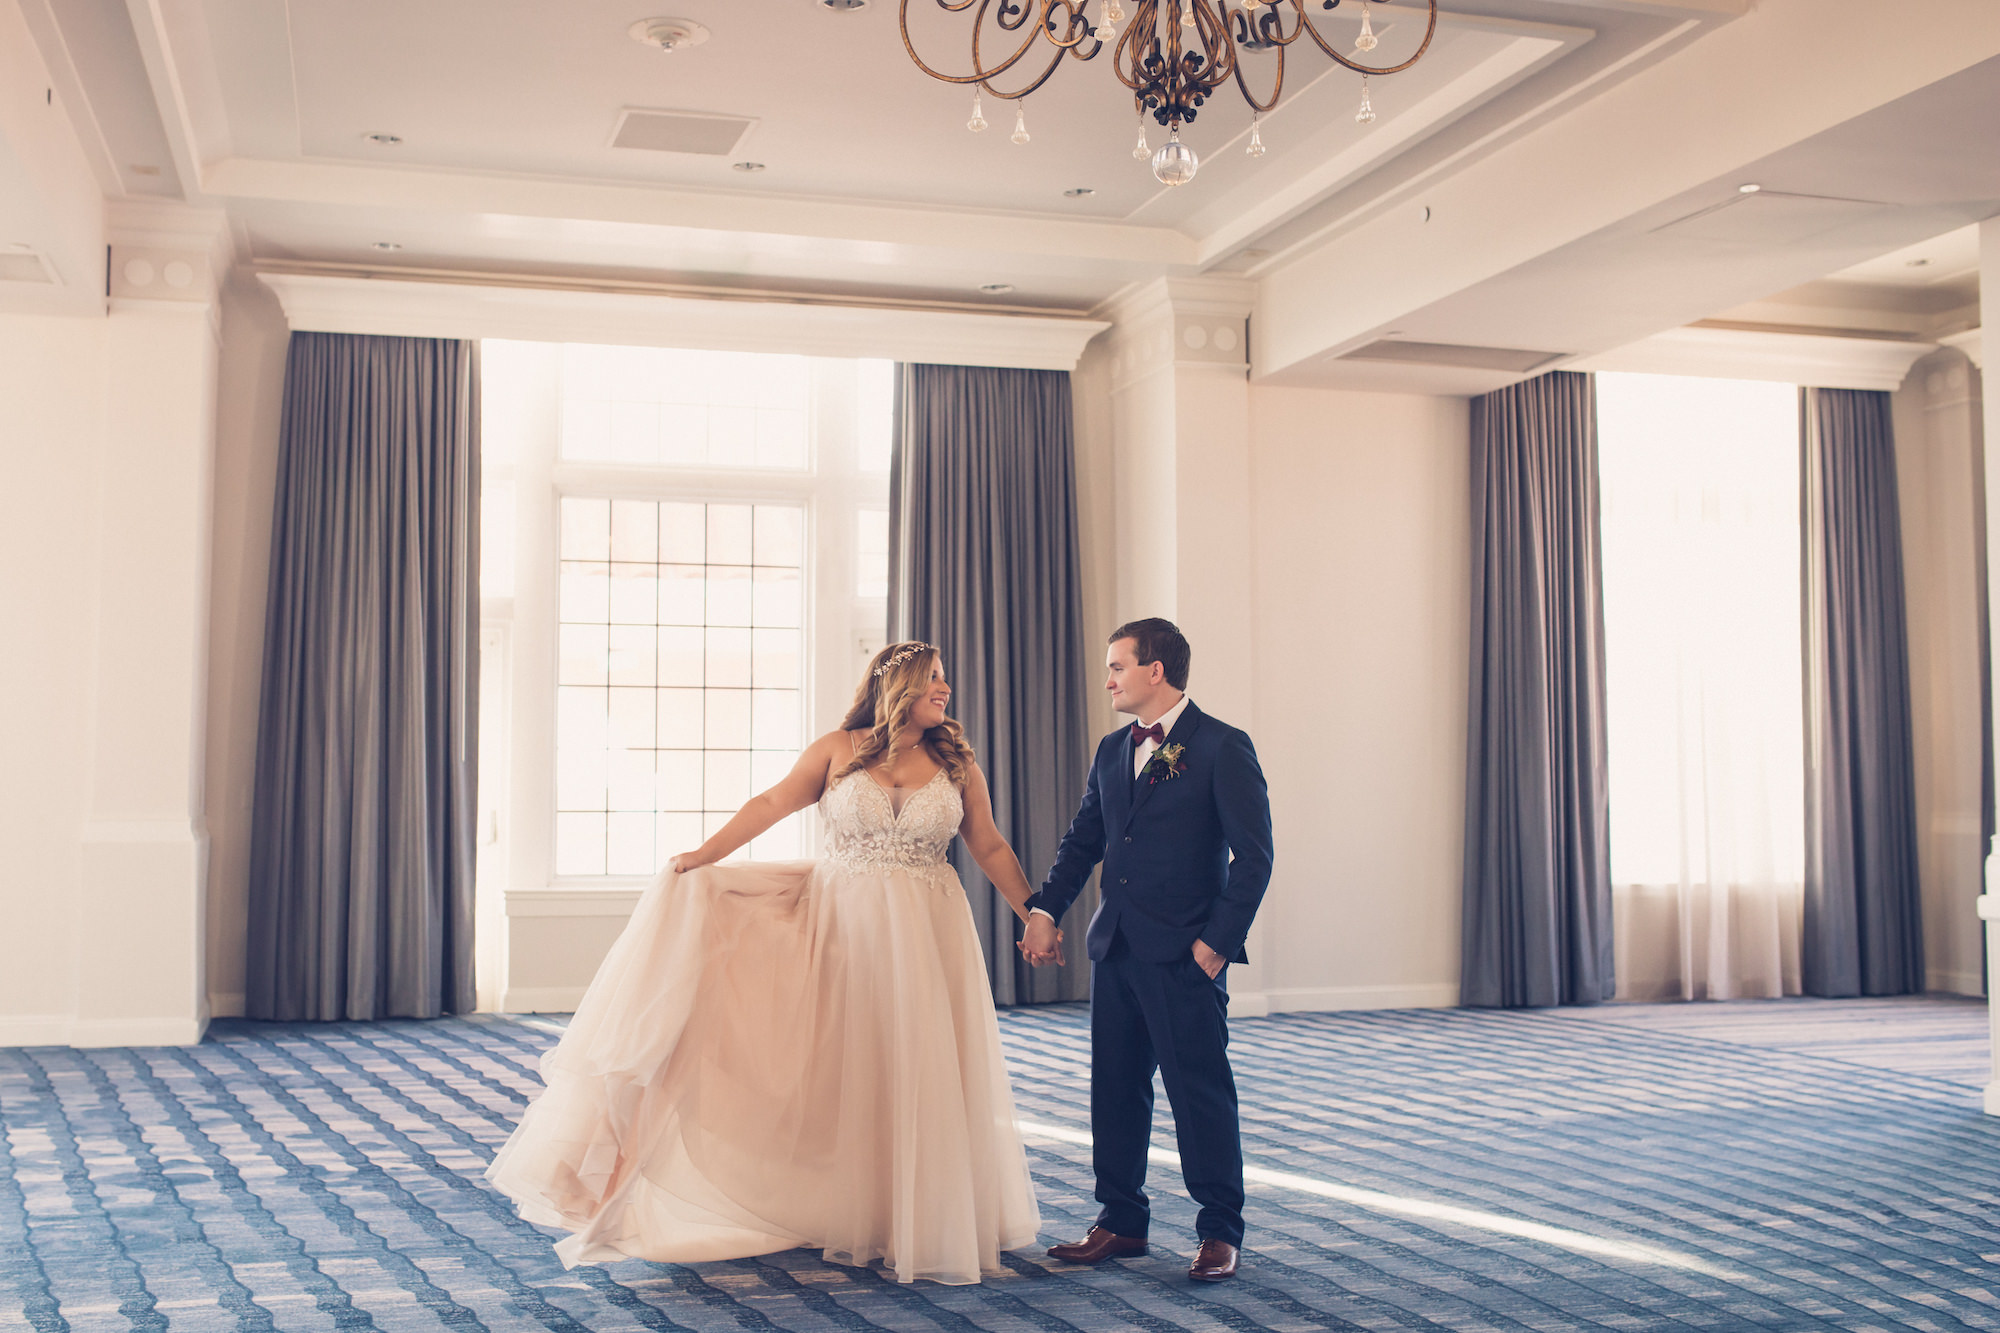 Tampa Bride and Groom Wedding Portrait in The Pink Palace Historic St. Pete Wedding Venue The Don CeSar | Wedding Photographer Luxe Light Images